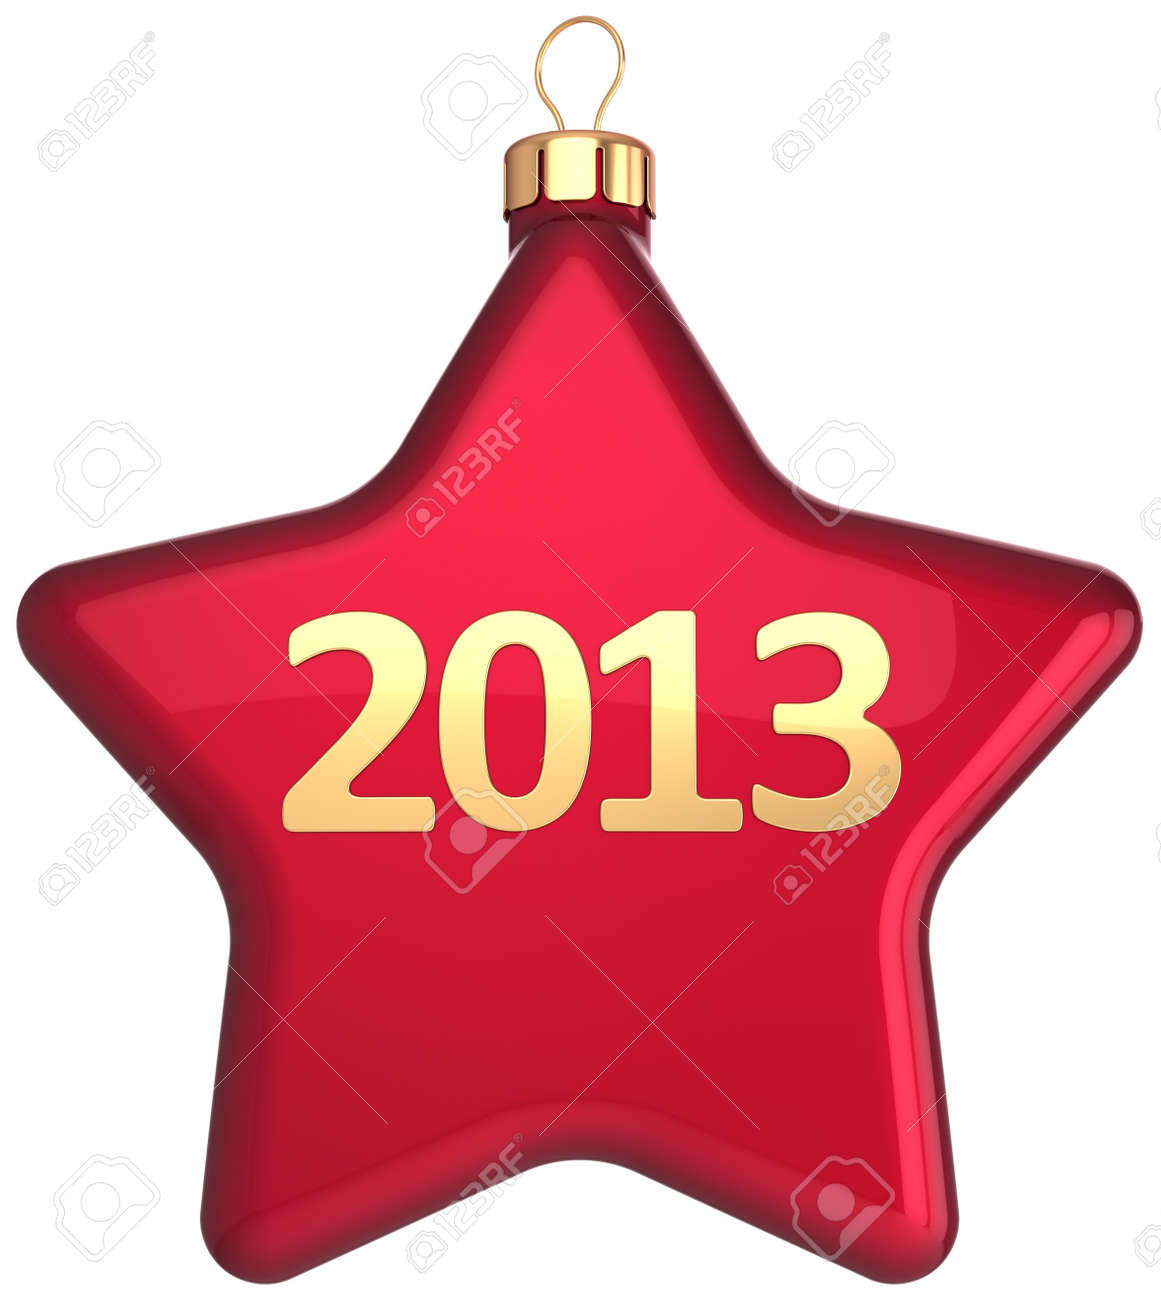 New Year 2013 Christmas ball bauble in form of red star shape decorated with gold calendar date  Winter holidays decoration  Merry Xmas greeting card  Detailed 3d render Stock Photo - 16407127